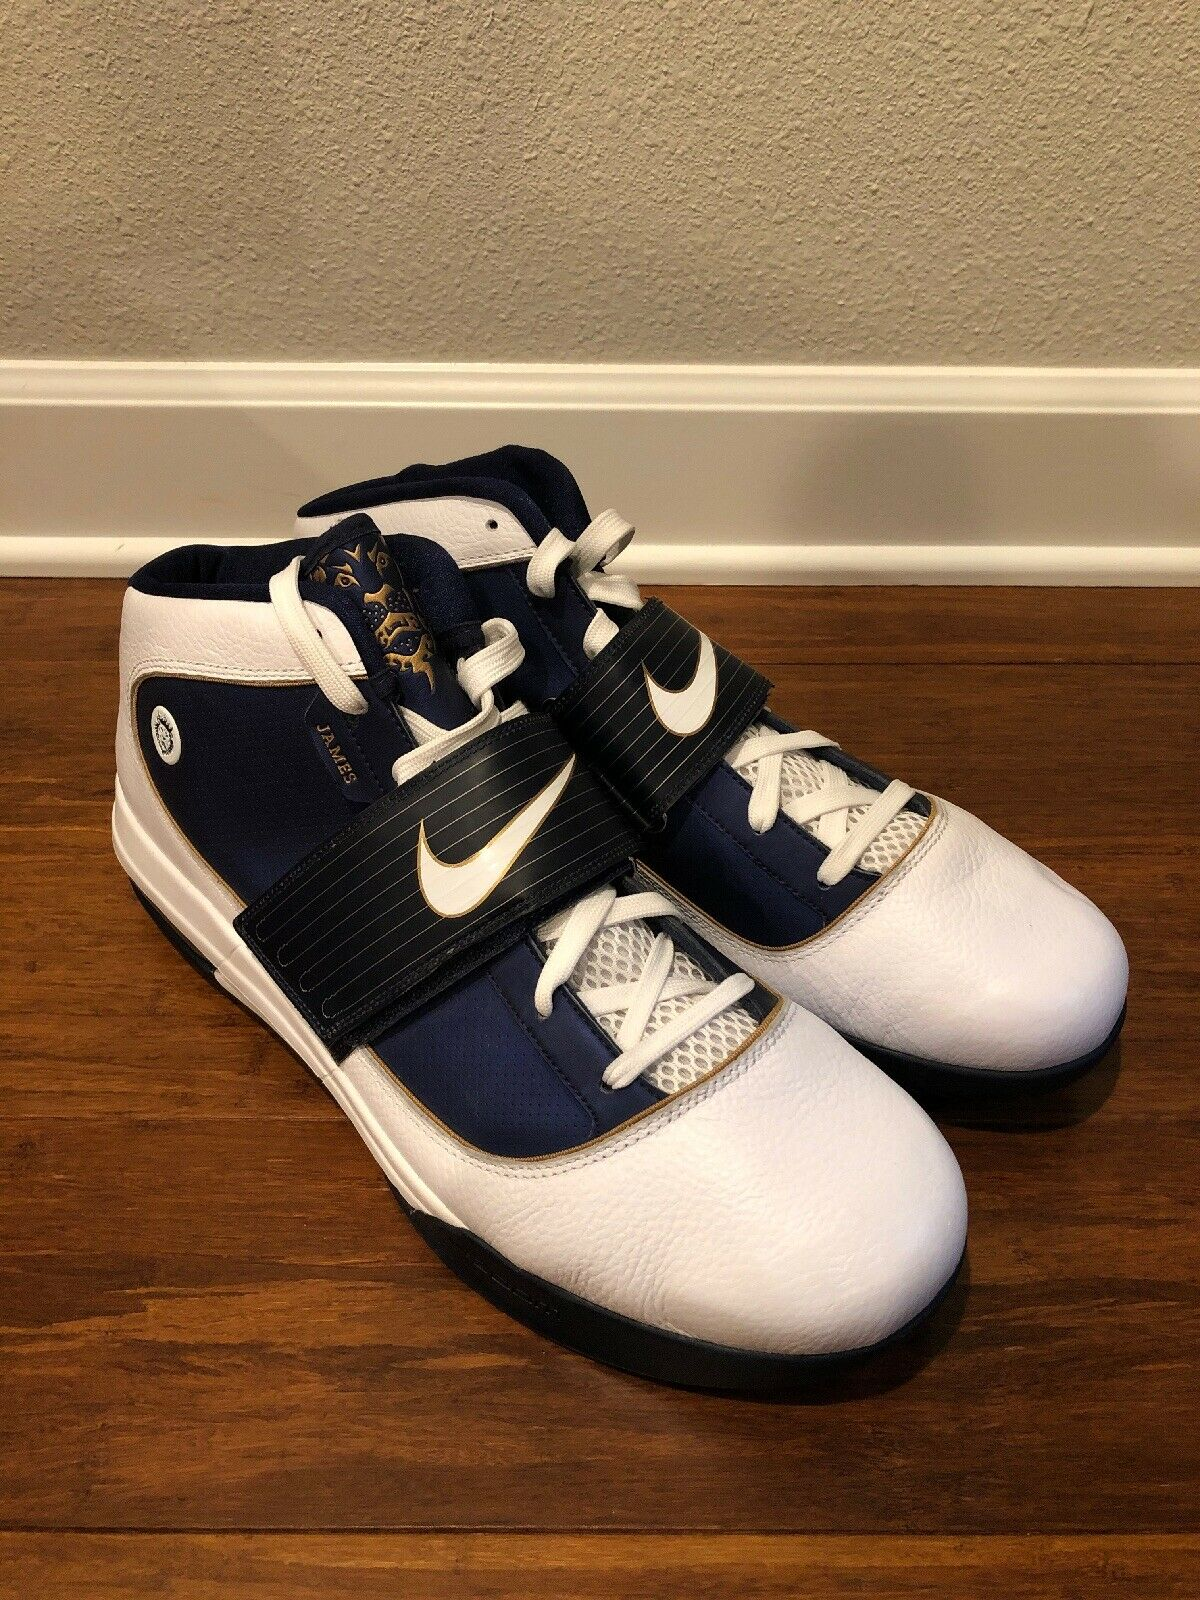 Nike Zoom Soldier IV Akron White Midnight Navy Sample Promo PE 407707 104 sz 18